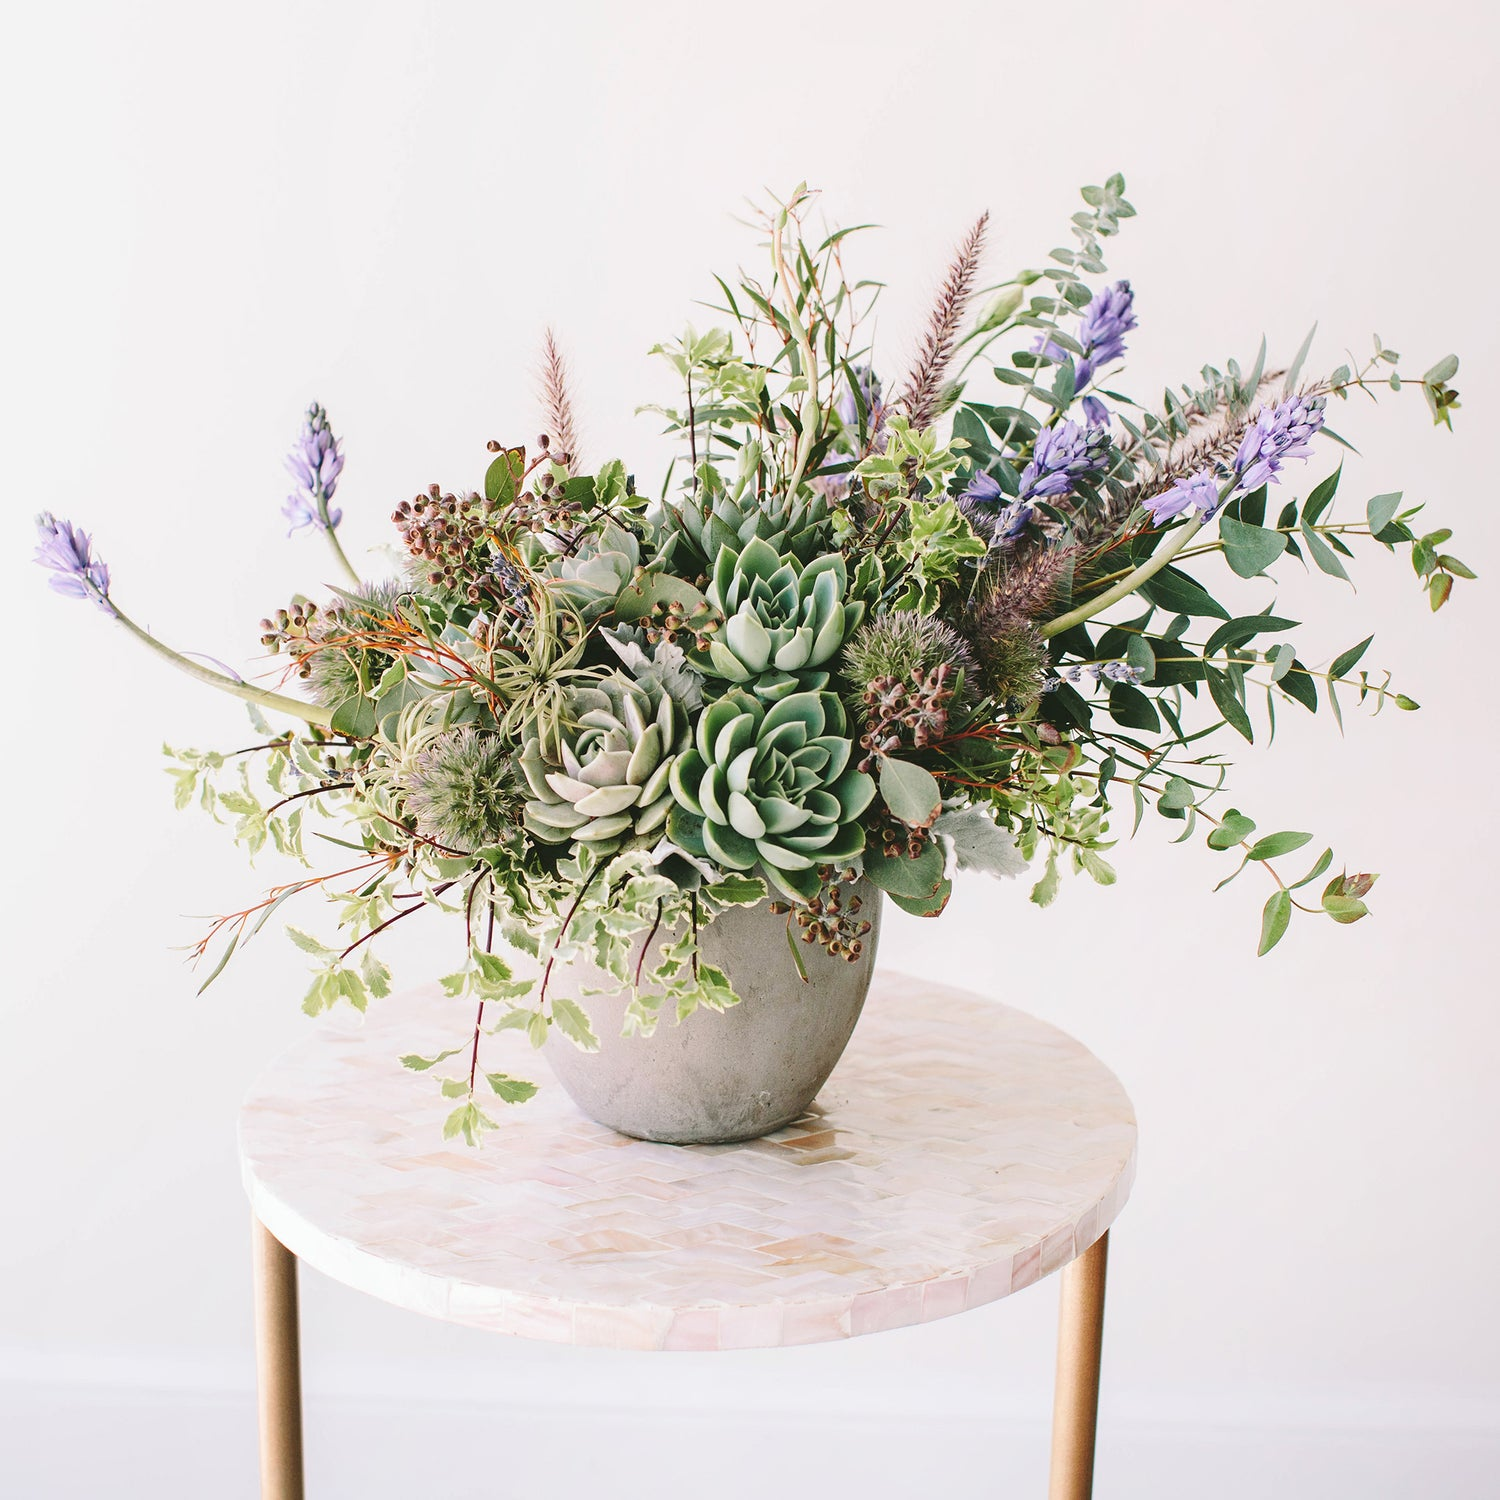 Wildflora Los Angeles florist Ventura Blvd Studio City flower bouquet floral arrangement wedding event special occasion shop store Eucalyptus green foliage variegated dusty miller hyacinth grass frond plume succulents grey gray blue table